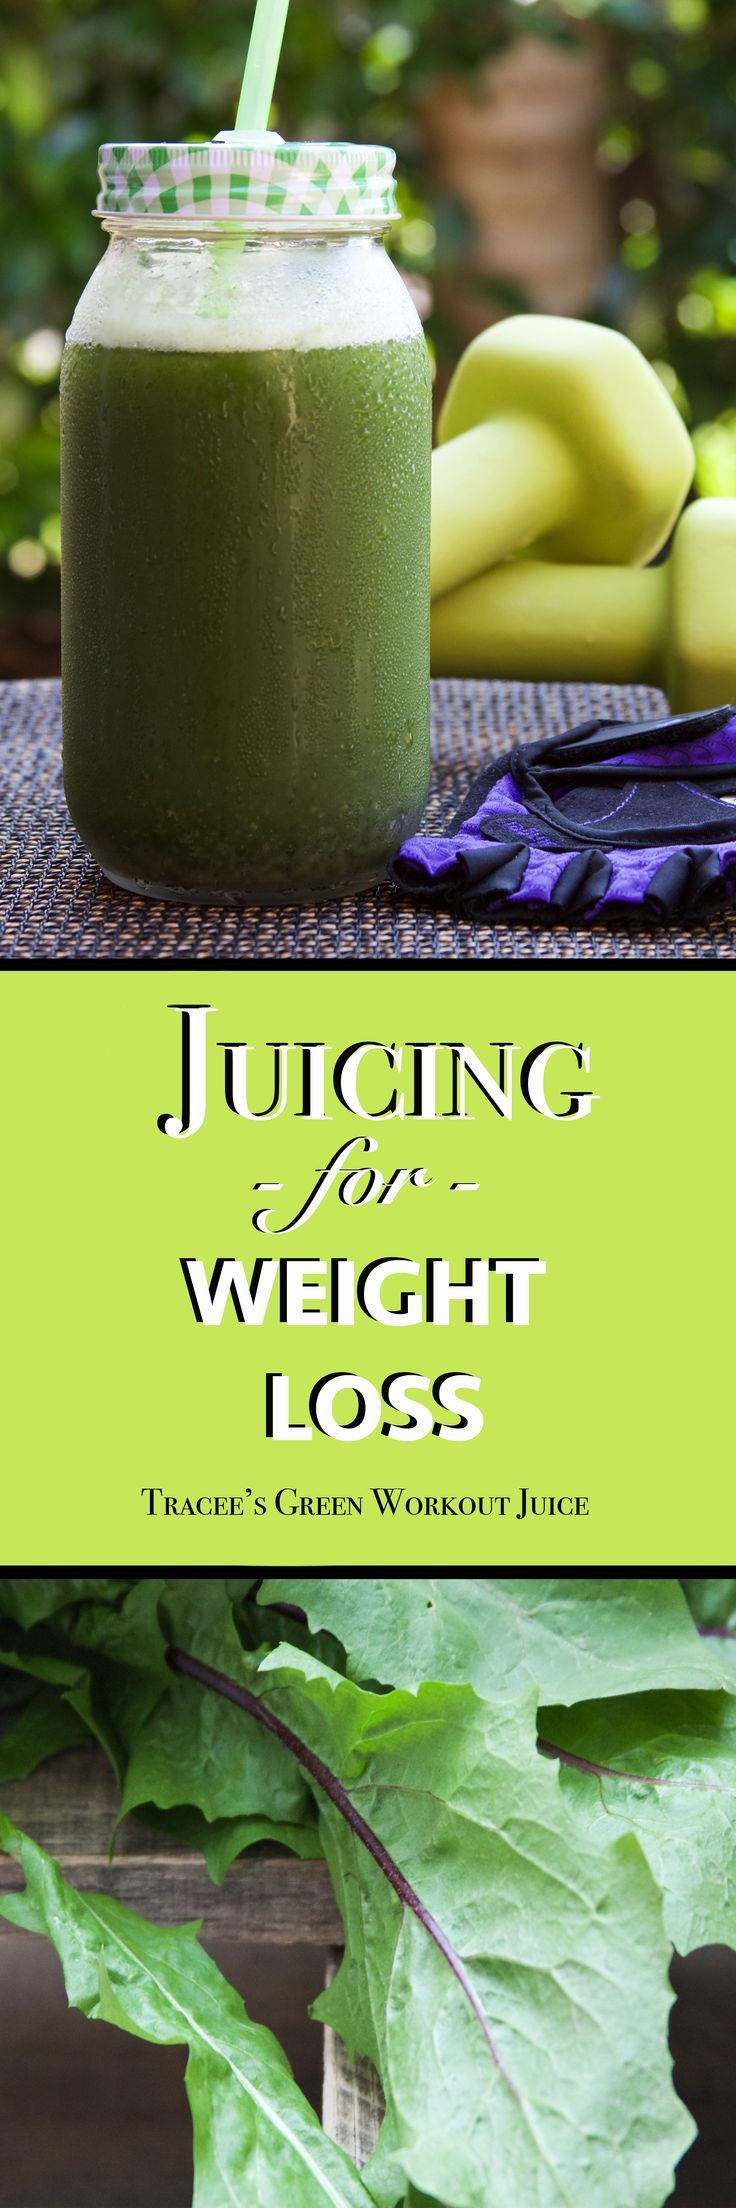 Tracee's Green Workout Juice   Recipe (With images ...